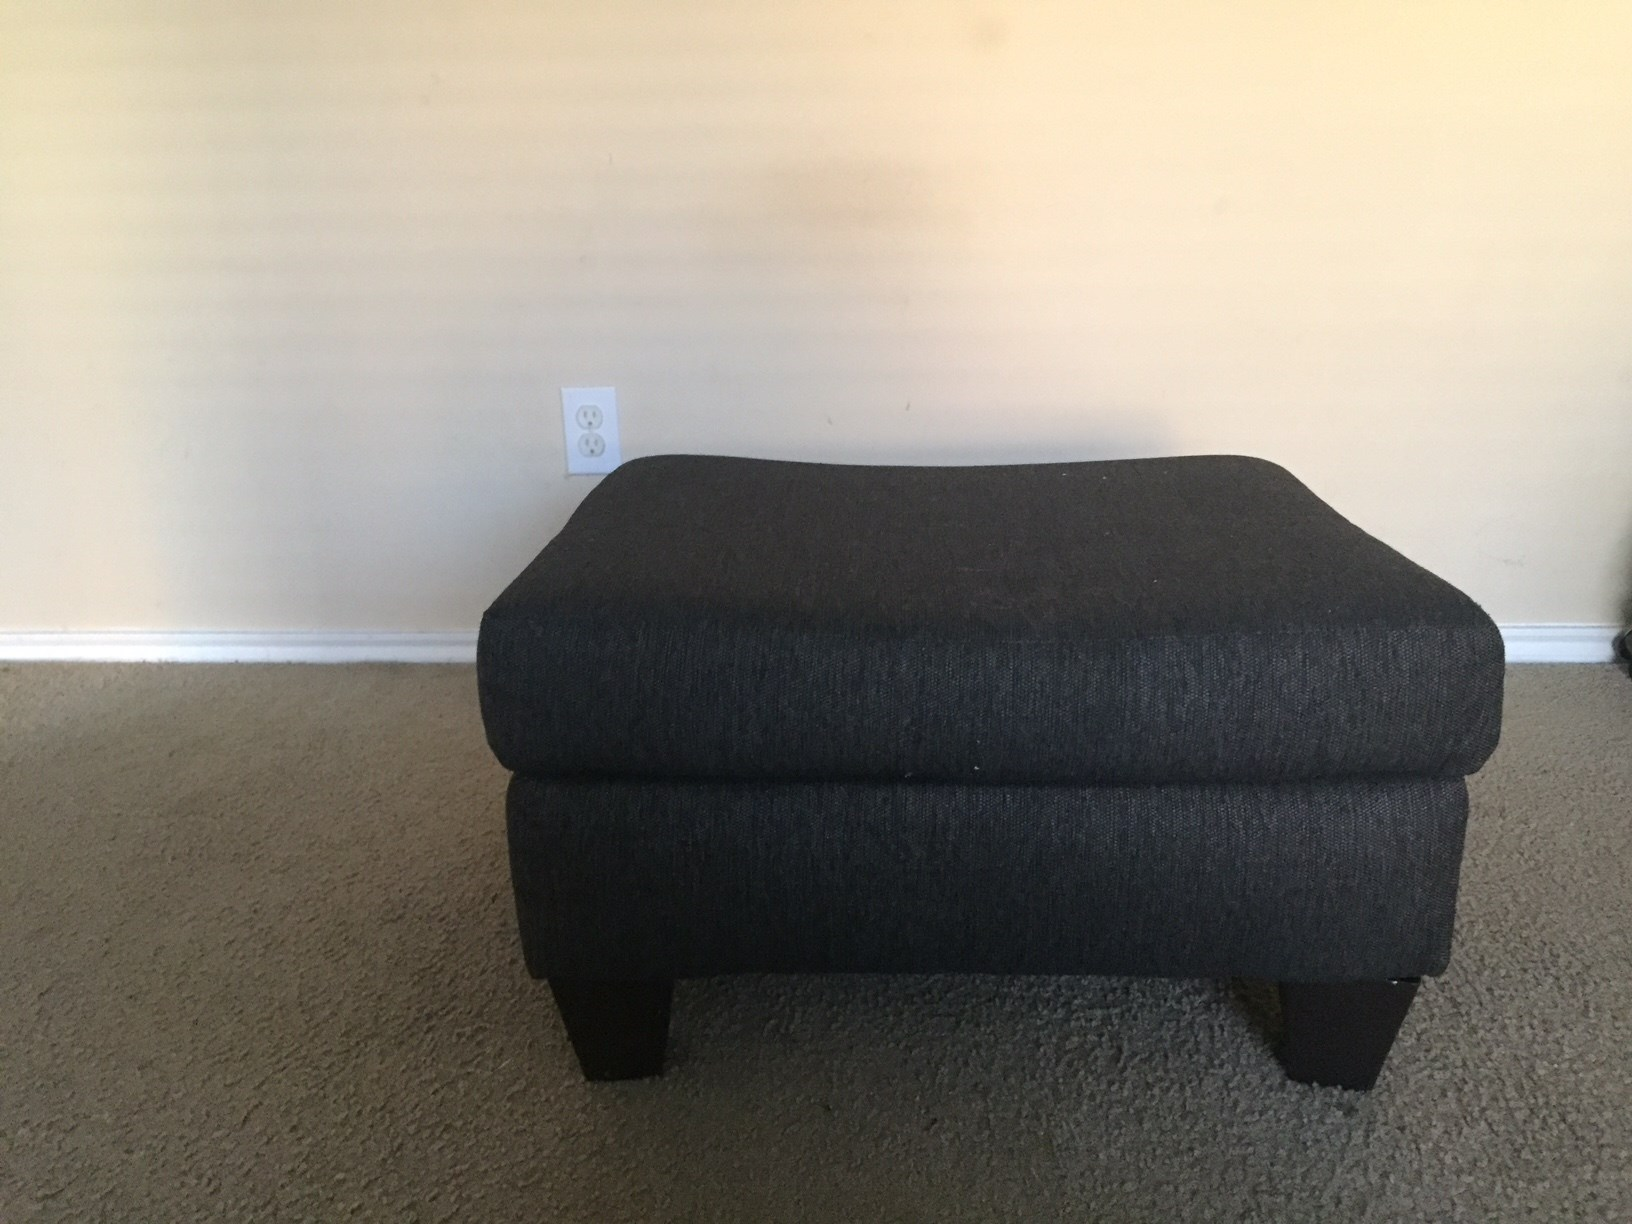 Sell Furniture And Home Decor  L size recliner along with automan. Buy Sell Online Used Furniture And Home Decor Dallas Fortworth